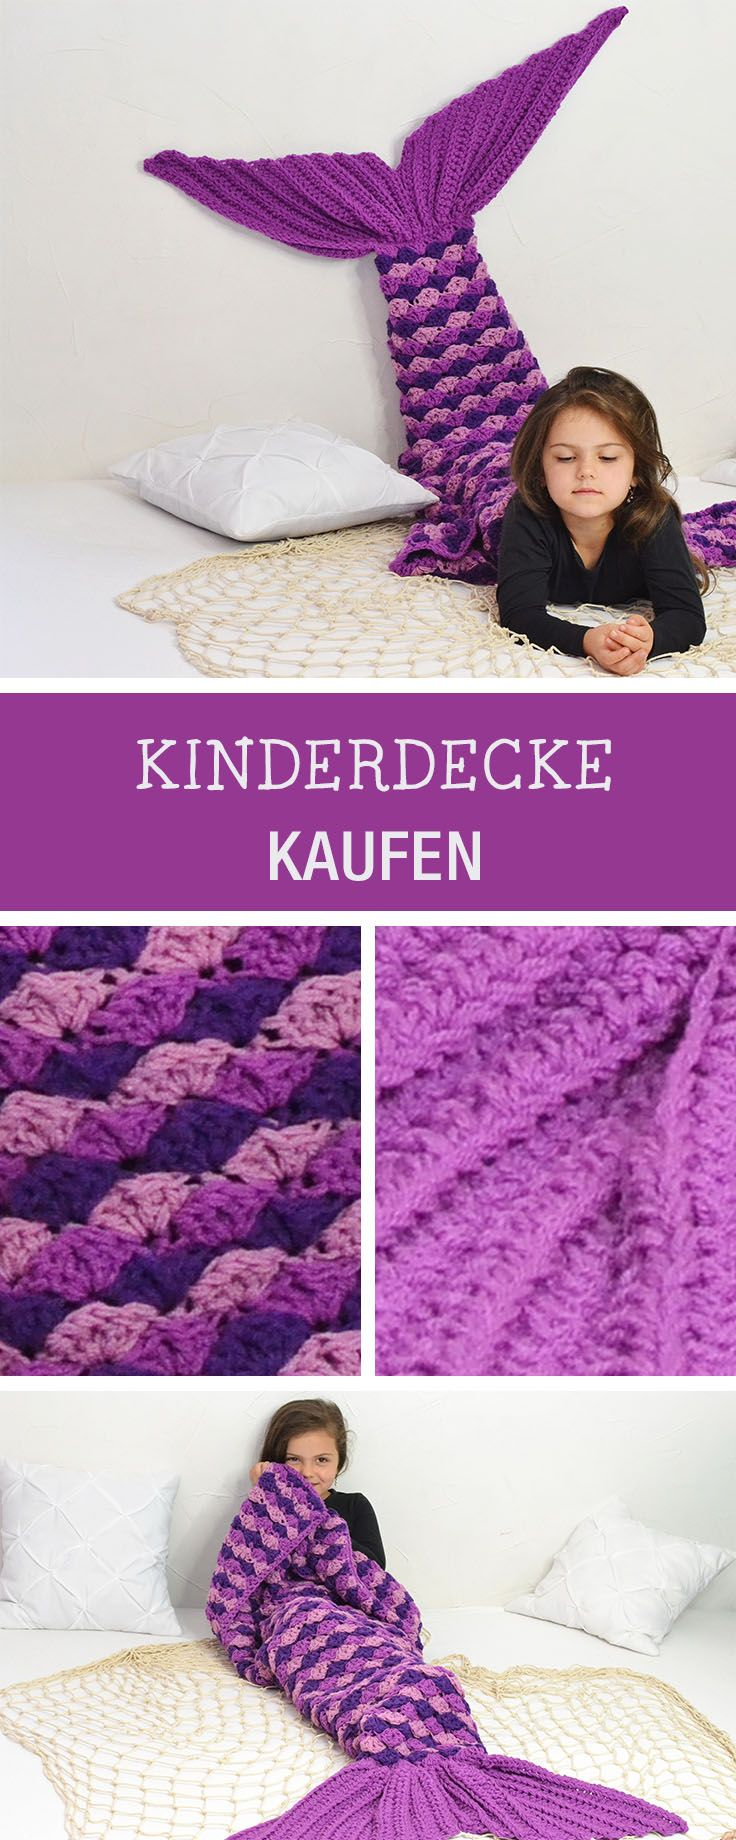 Gestrickte Meerjungfrauen-Decke für Kinder, Geschenkidee / magic christmas gift idea: knitted mermaid blanket via DaWanda.com